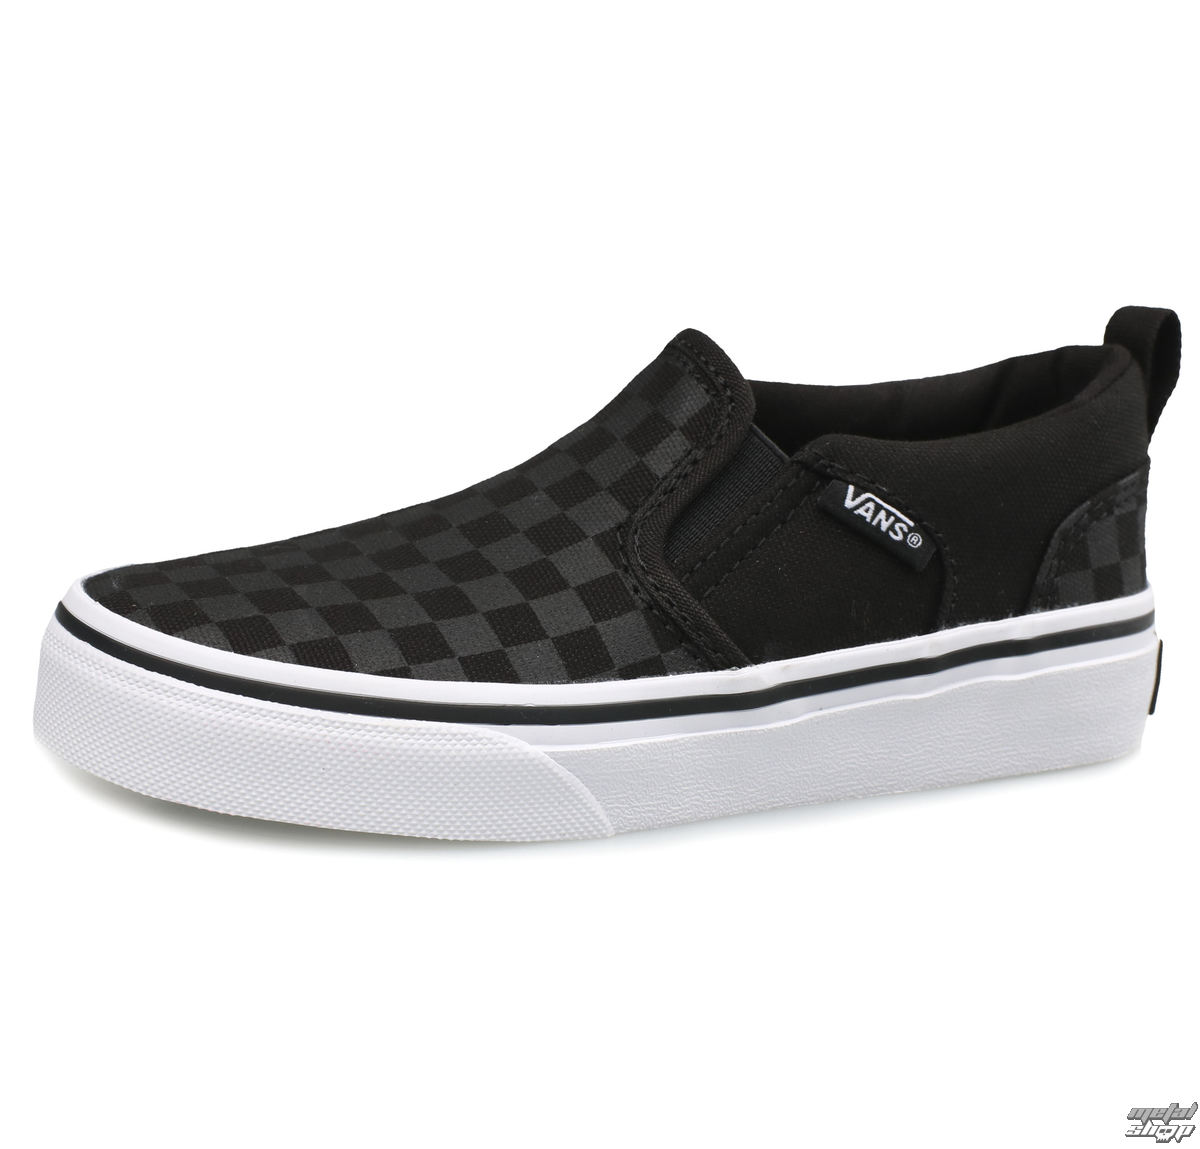 low sneakers children's - YT ASHER (Checker)Blk/Bl - VANS